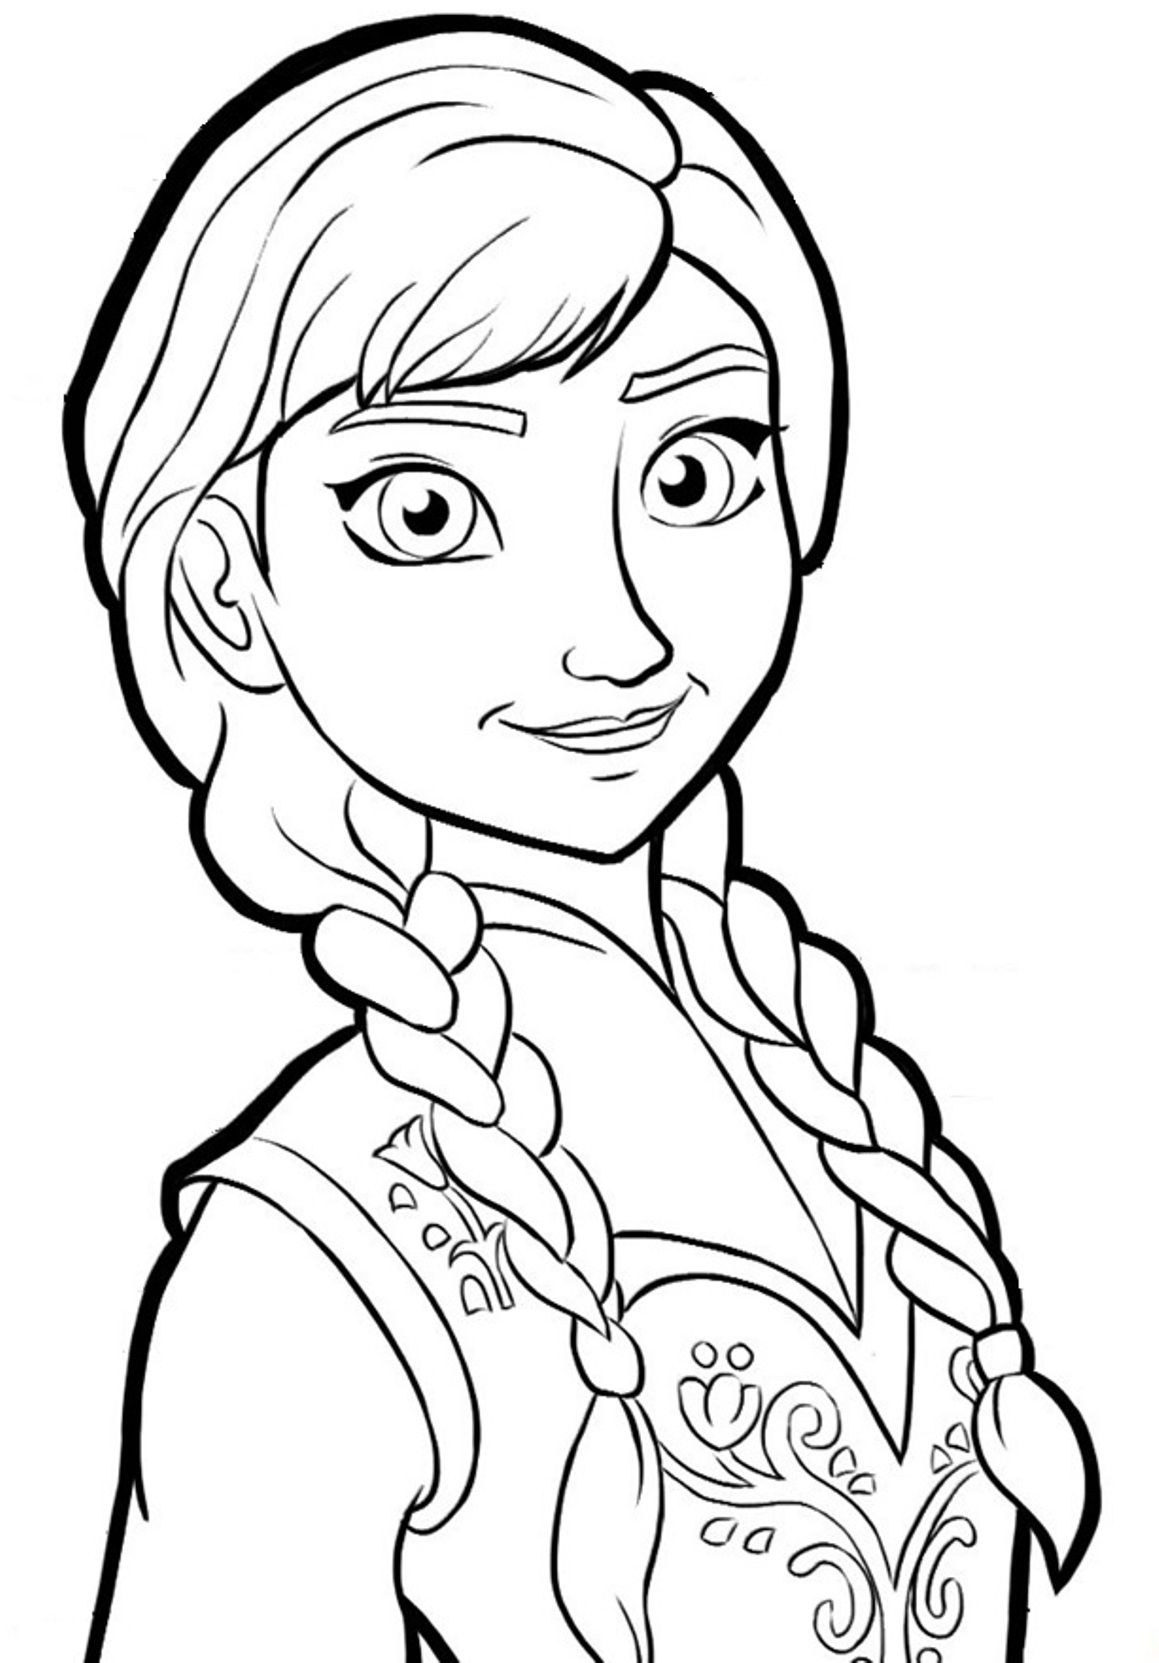 Download Coloring Page Anna Frozen Or Print Coloring Page Anna Elsa Coloring Pages Frozen Coloring Frozen Coloring Pages